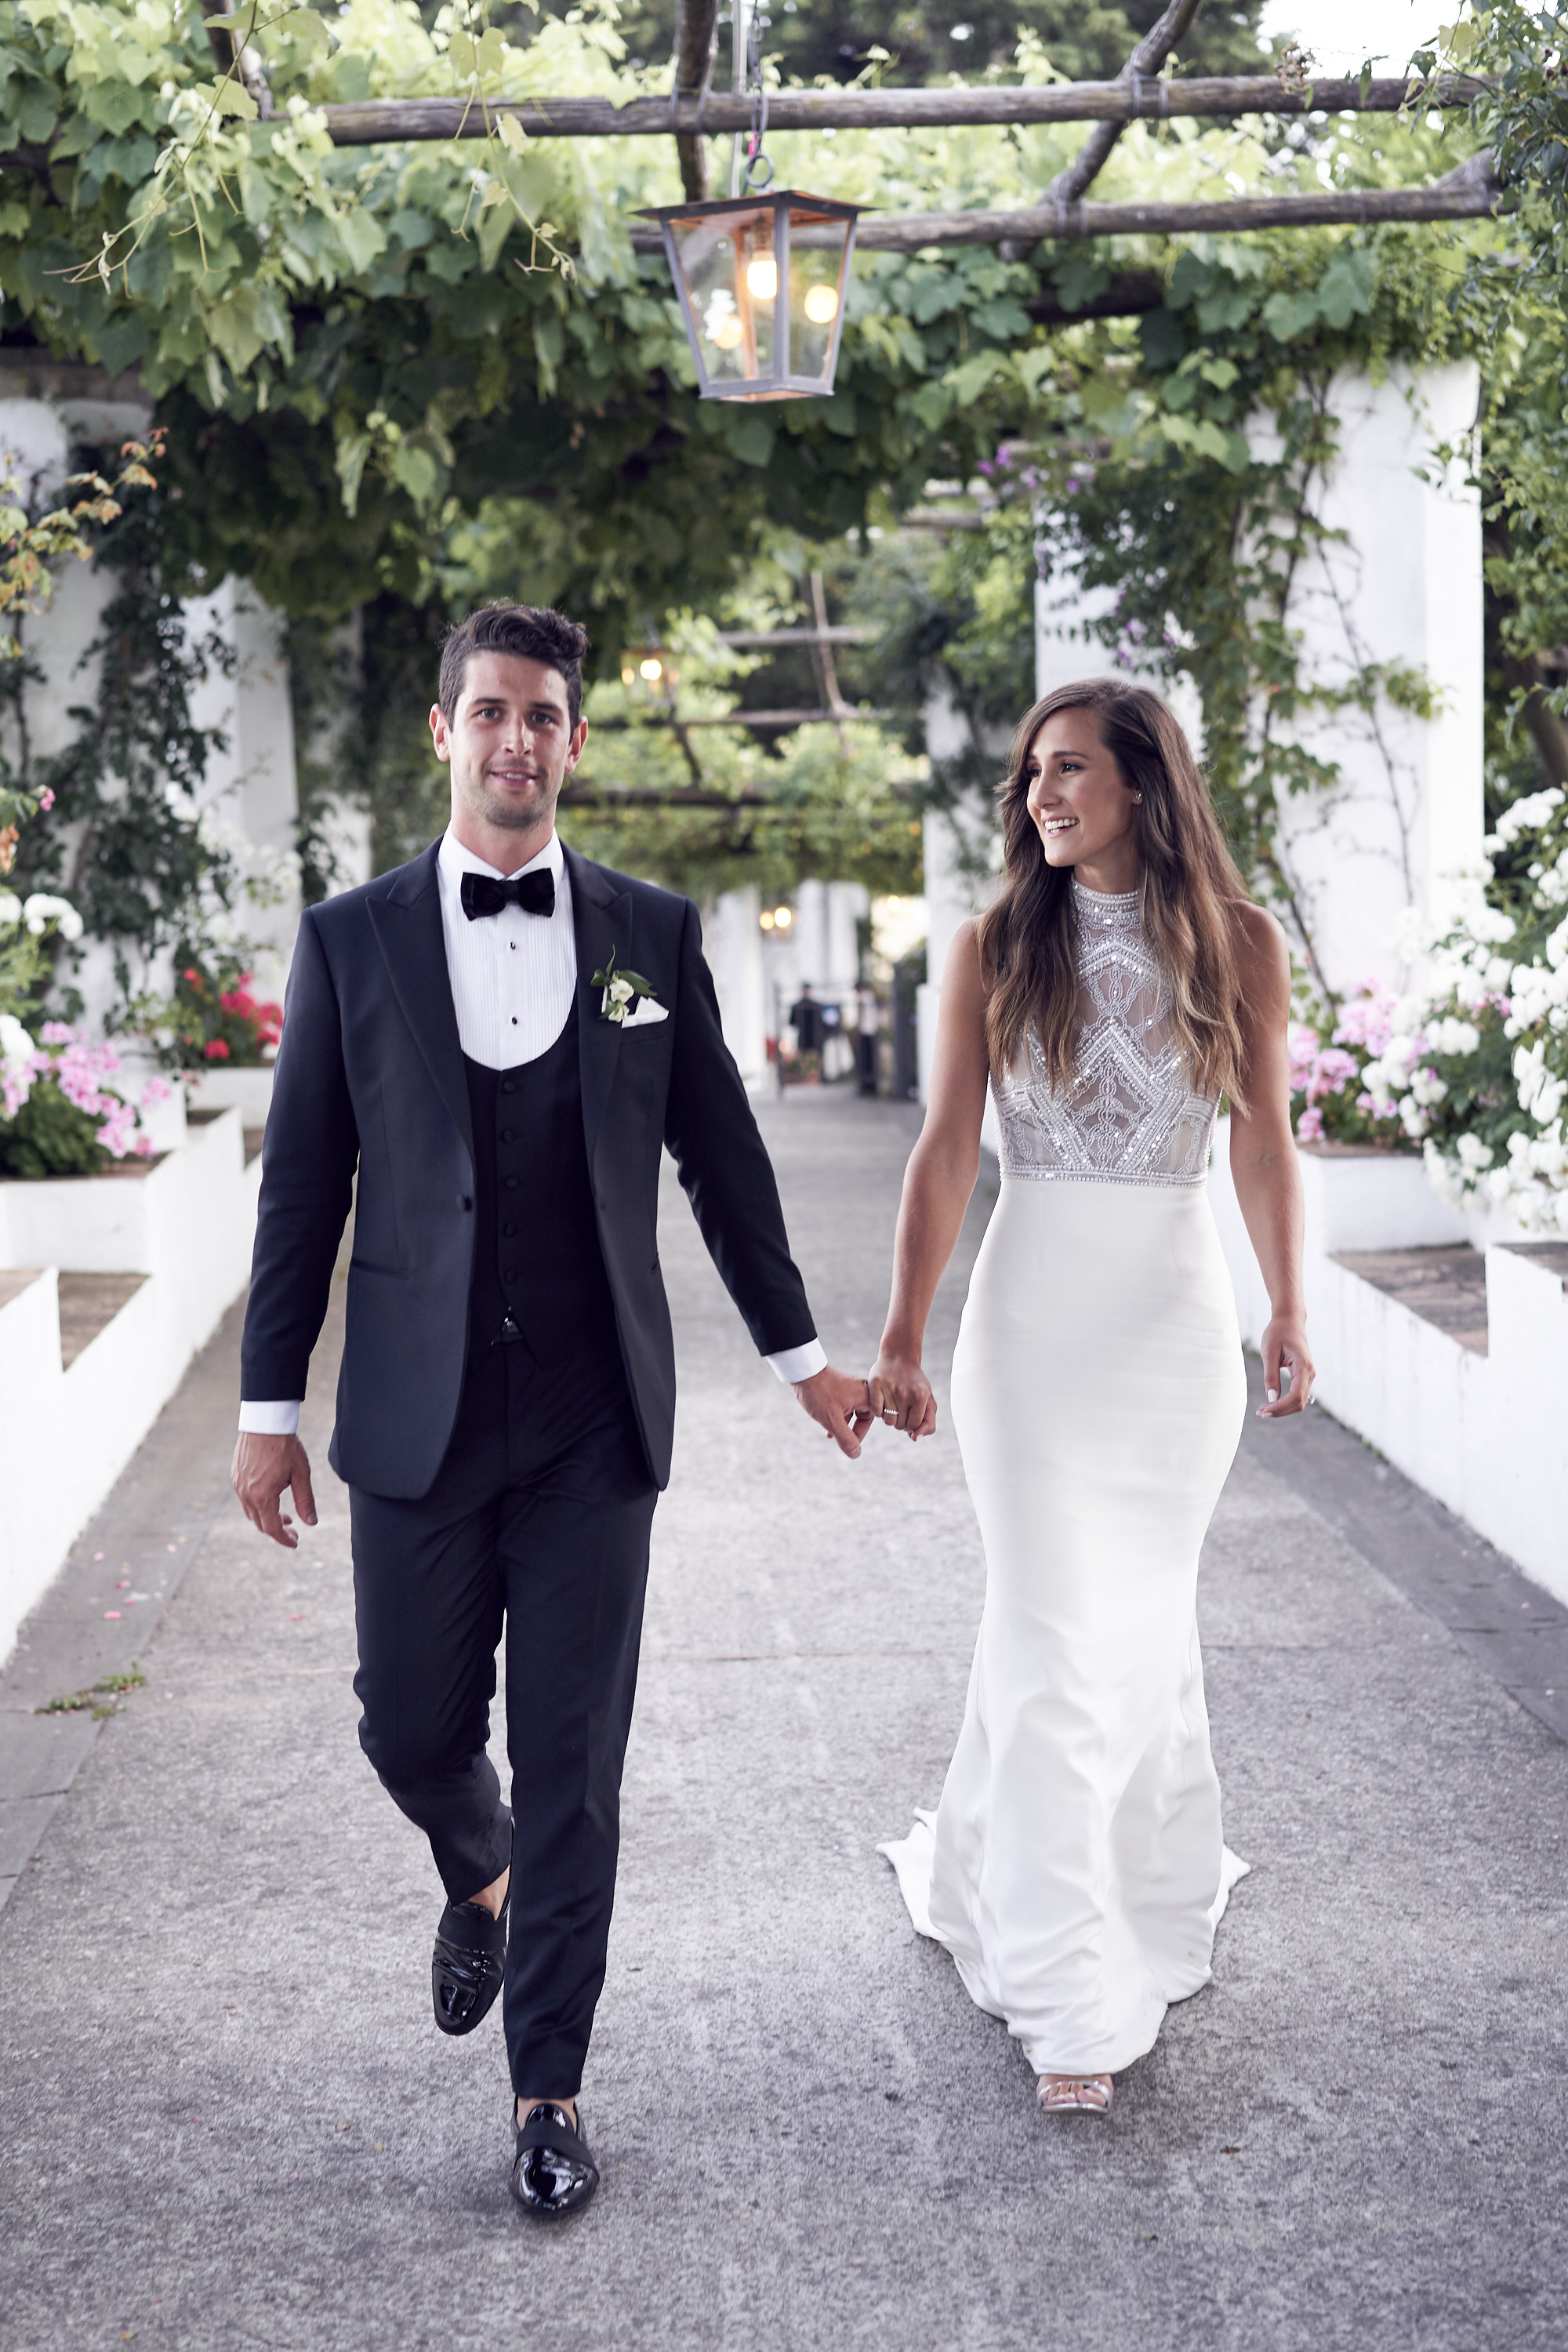 Intimate wedding belmond hotel caruso ravello, By Lost In Love Photography